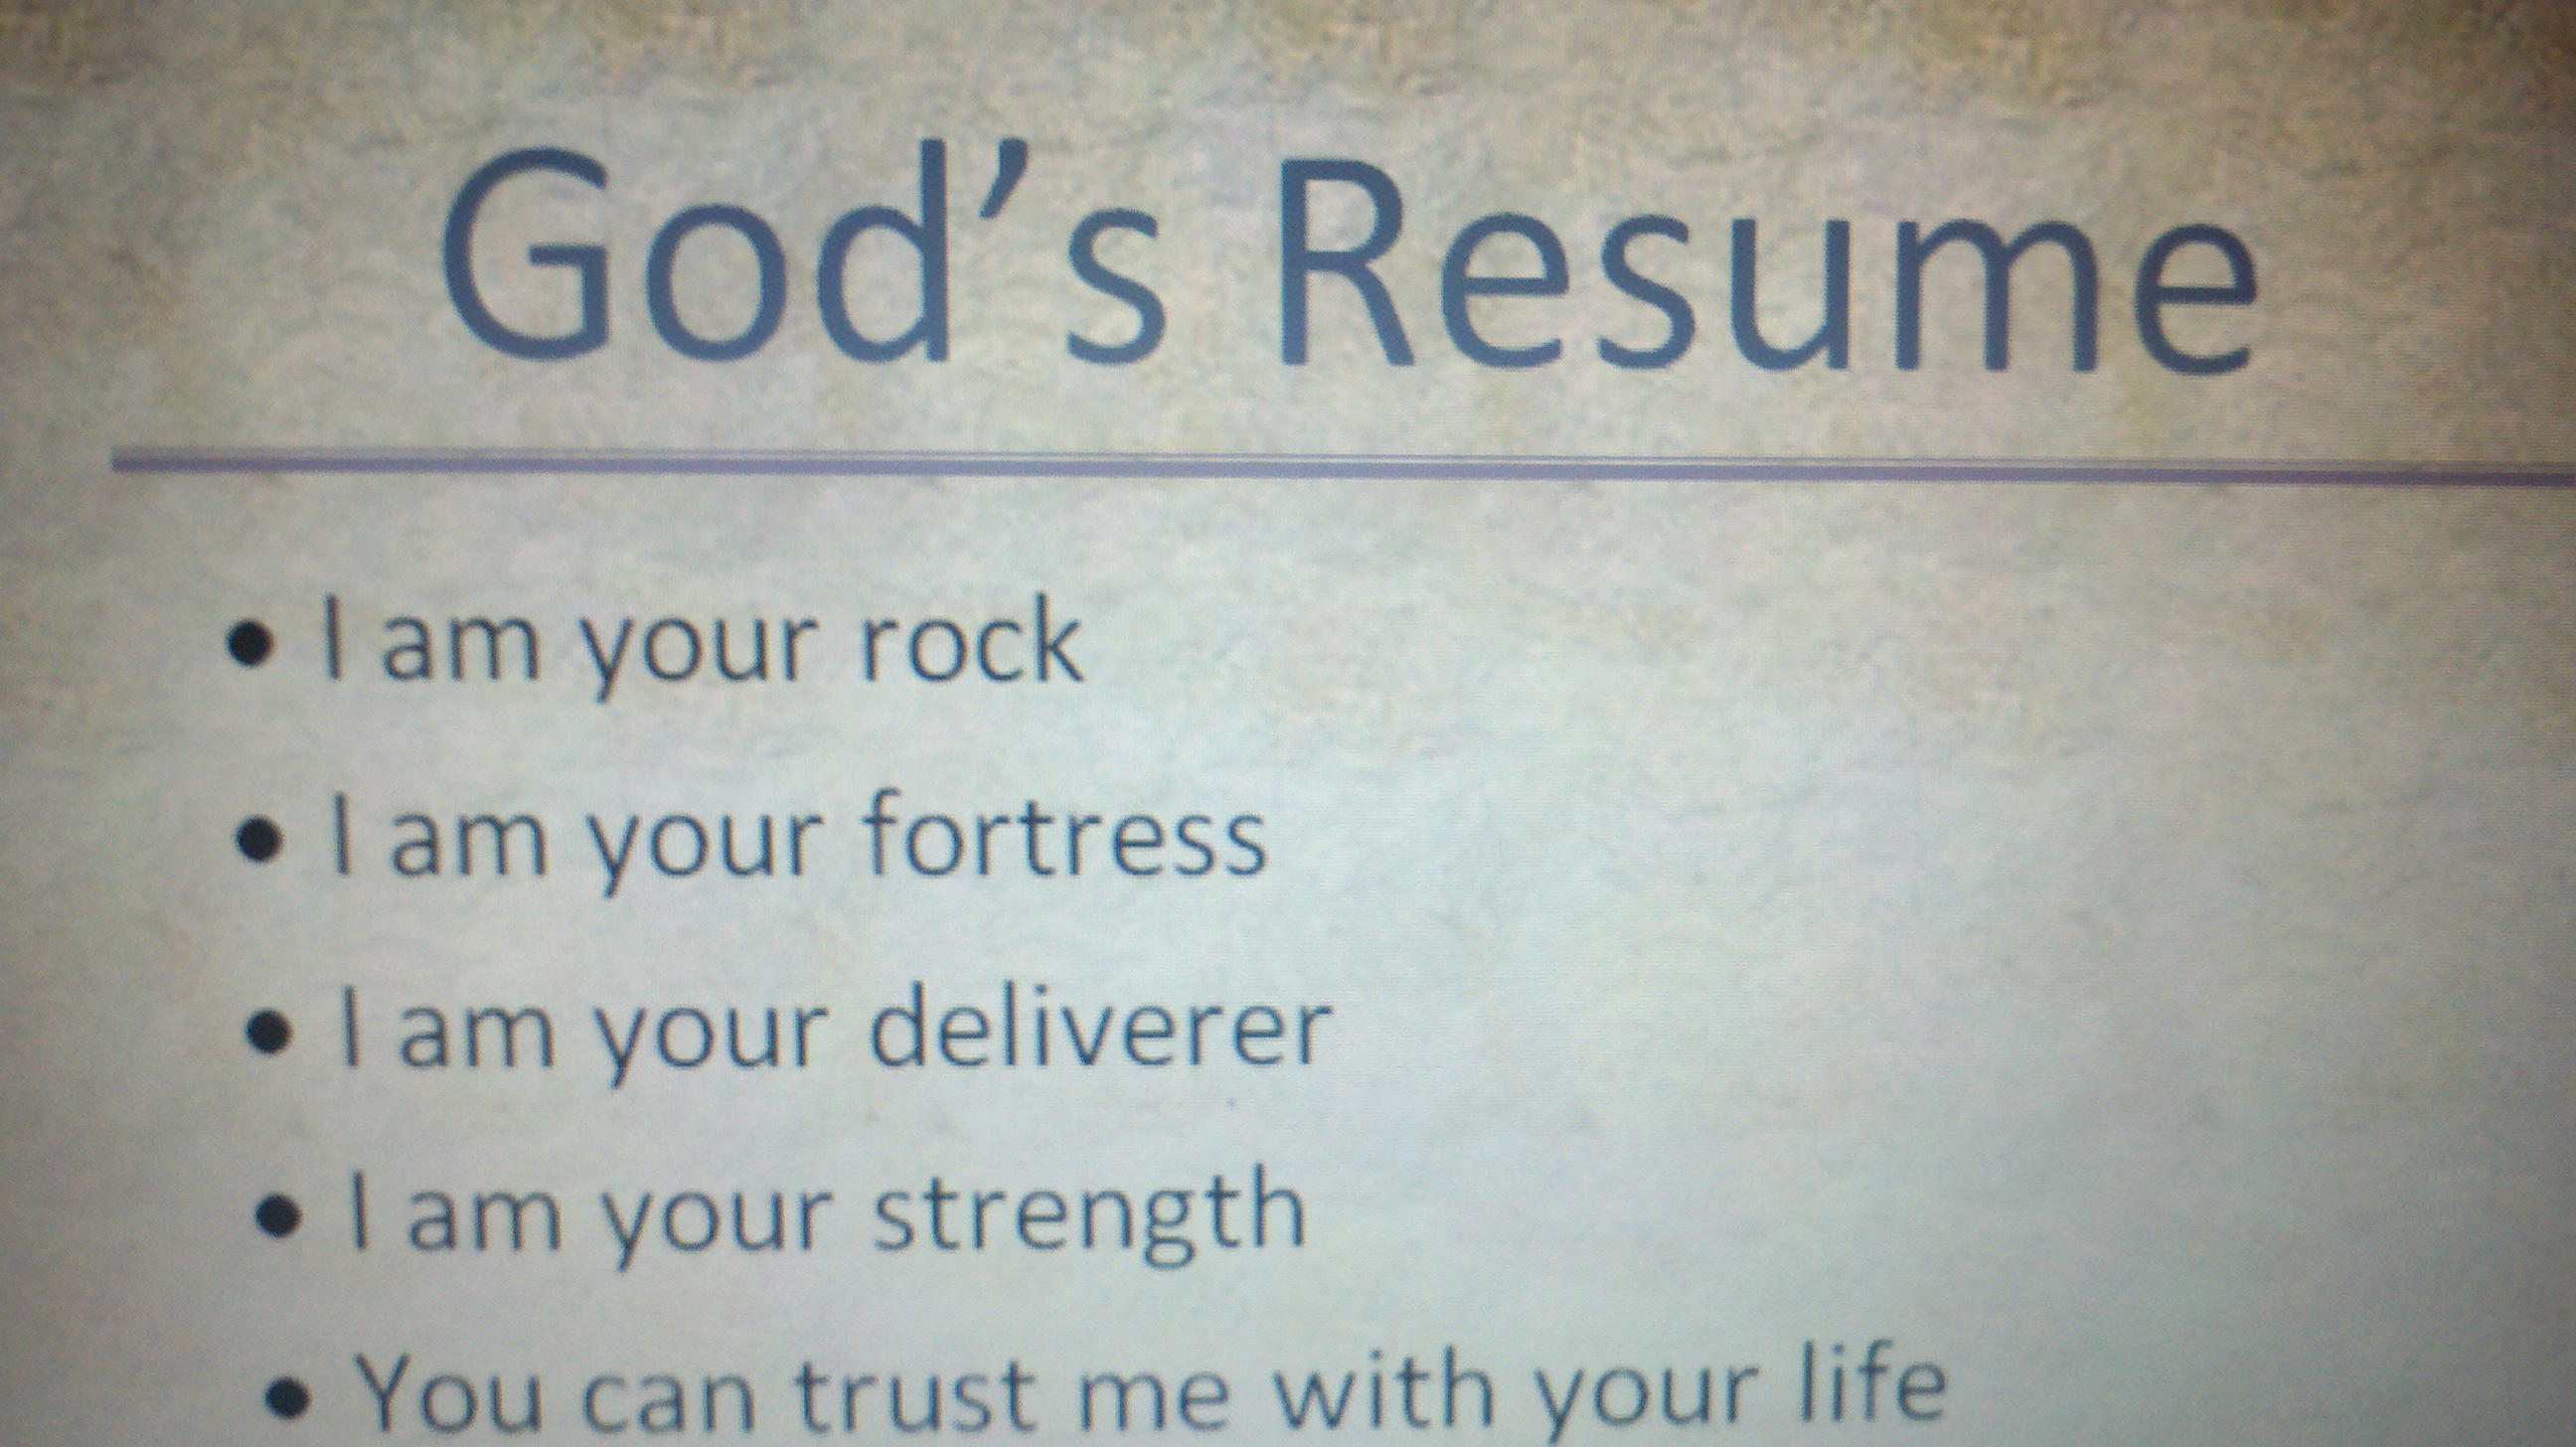 For Gods Resume - A Good Owner Manual Example •